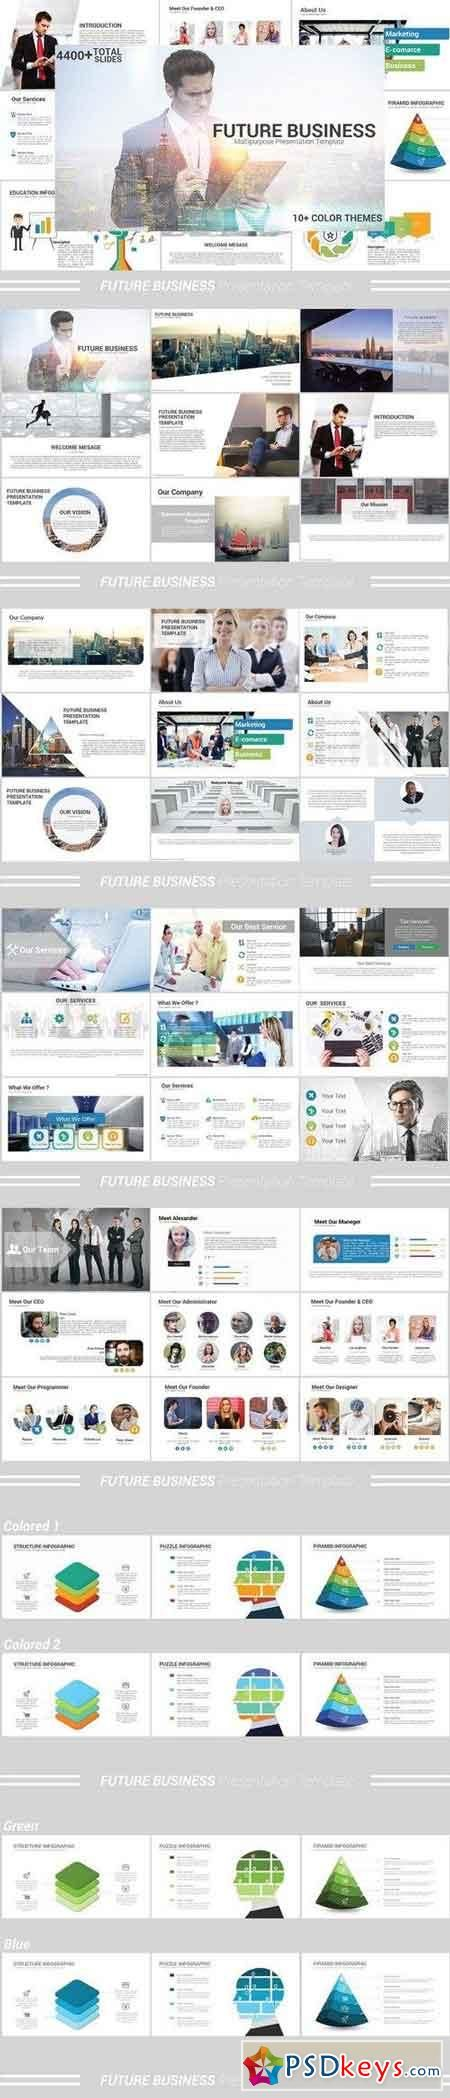 289 best Presentation Templates images on Pinterest | Catalog ...